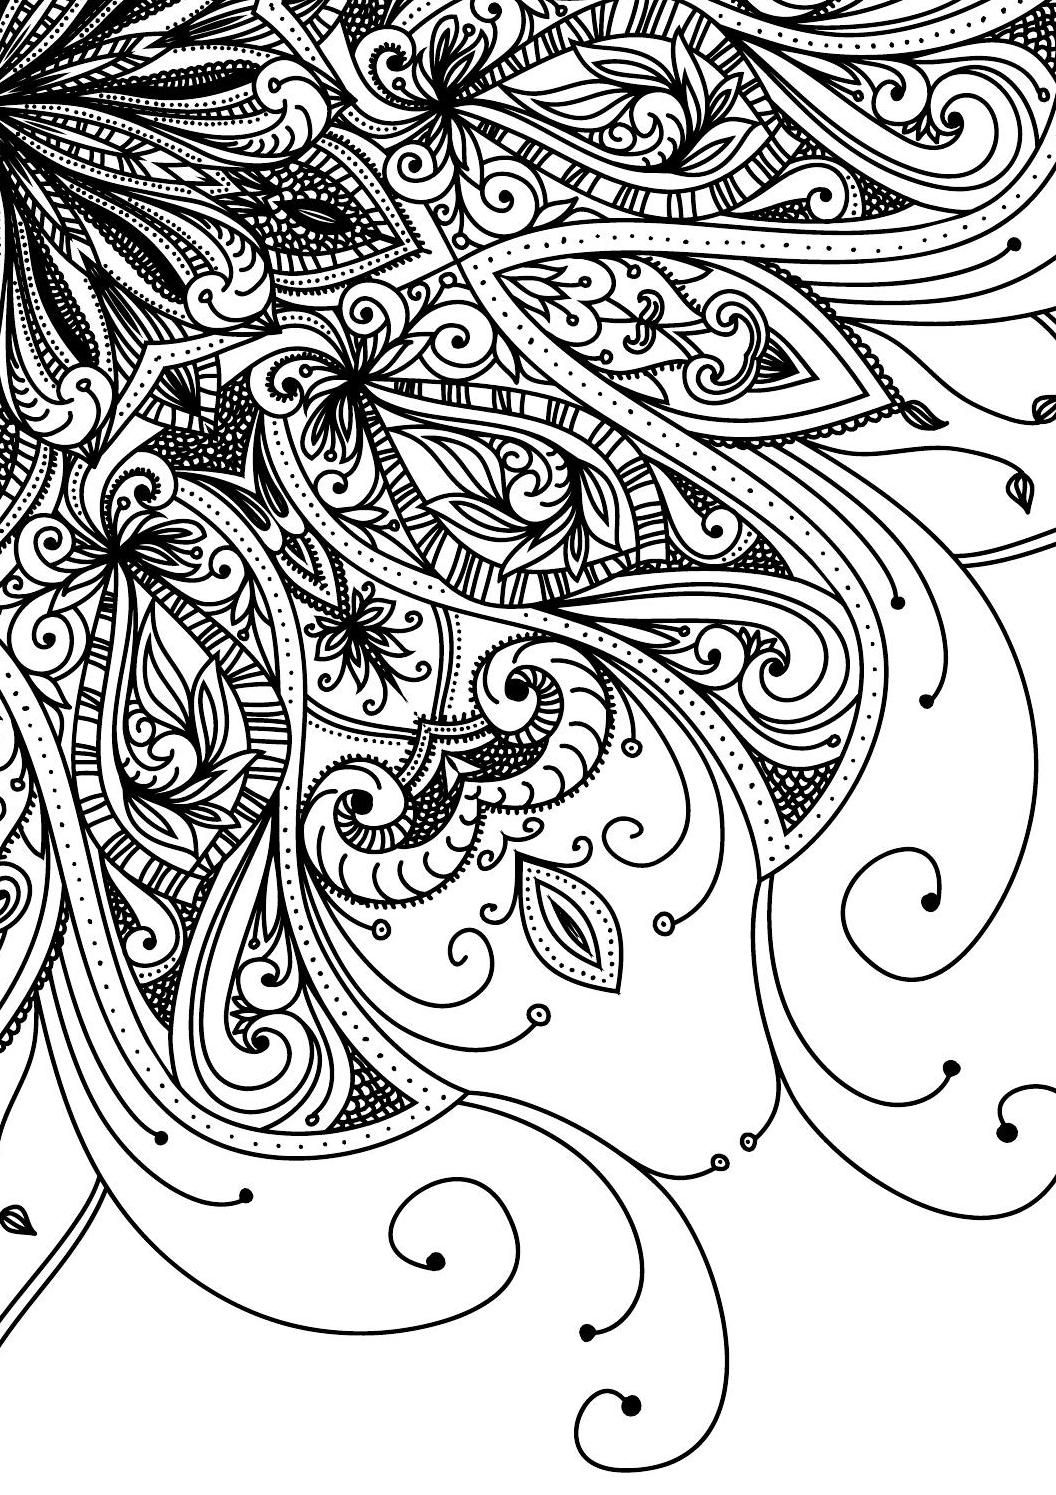 Pin On Coloring Pages For Adults Free Printables [ 1495 x 1056 Pixel ]